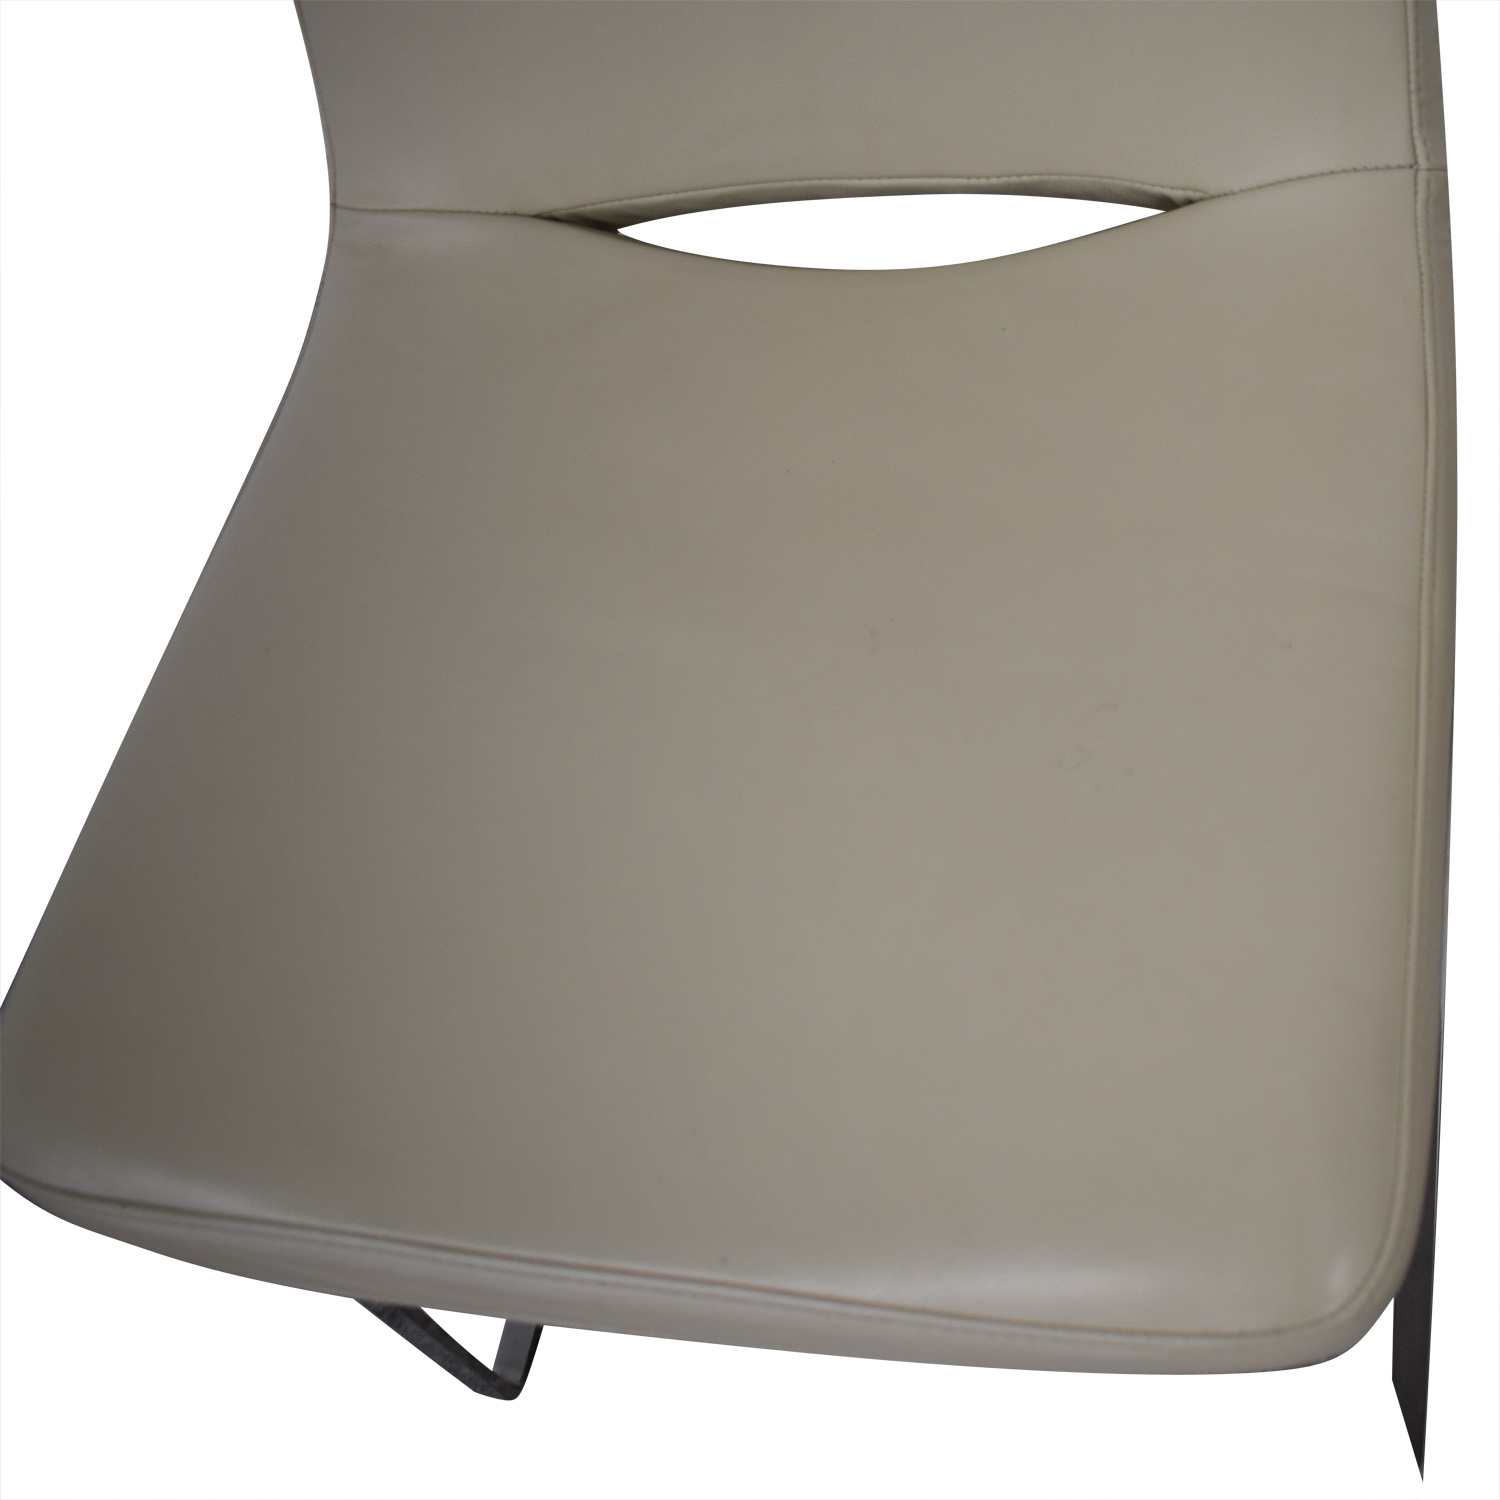 Tui Lifestyle Tui Lifestyle Leather Dining Chair Set Dining Chairs